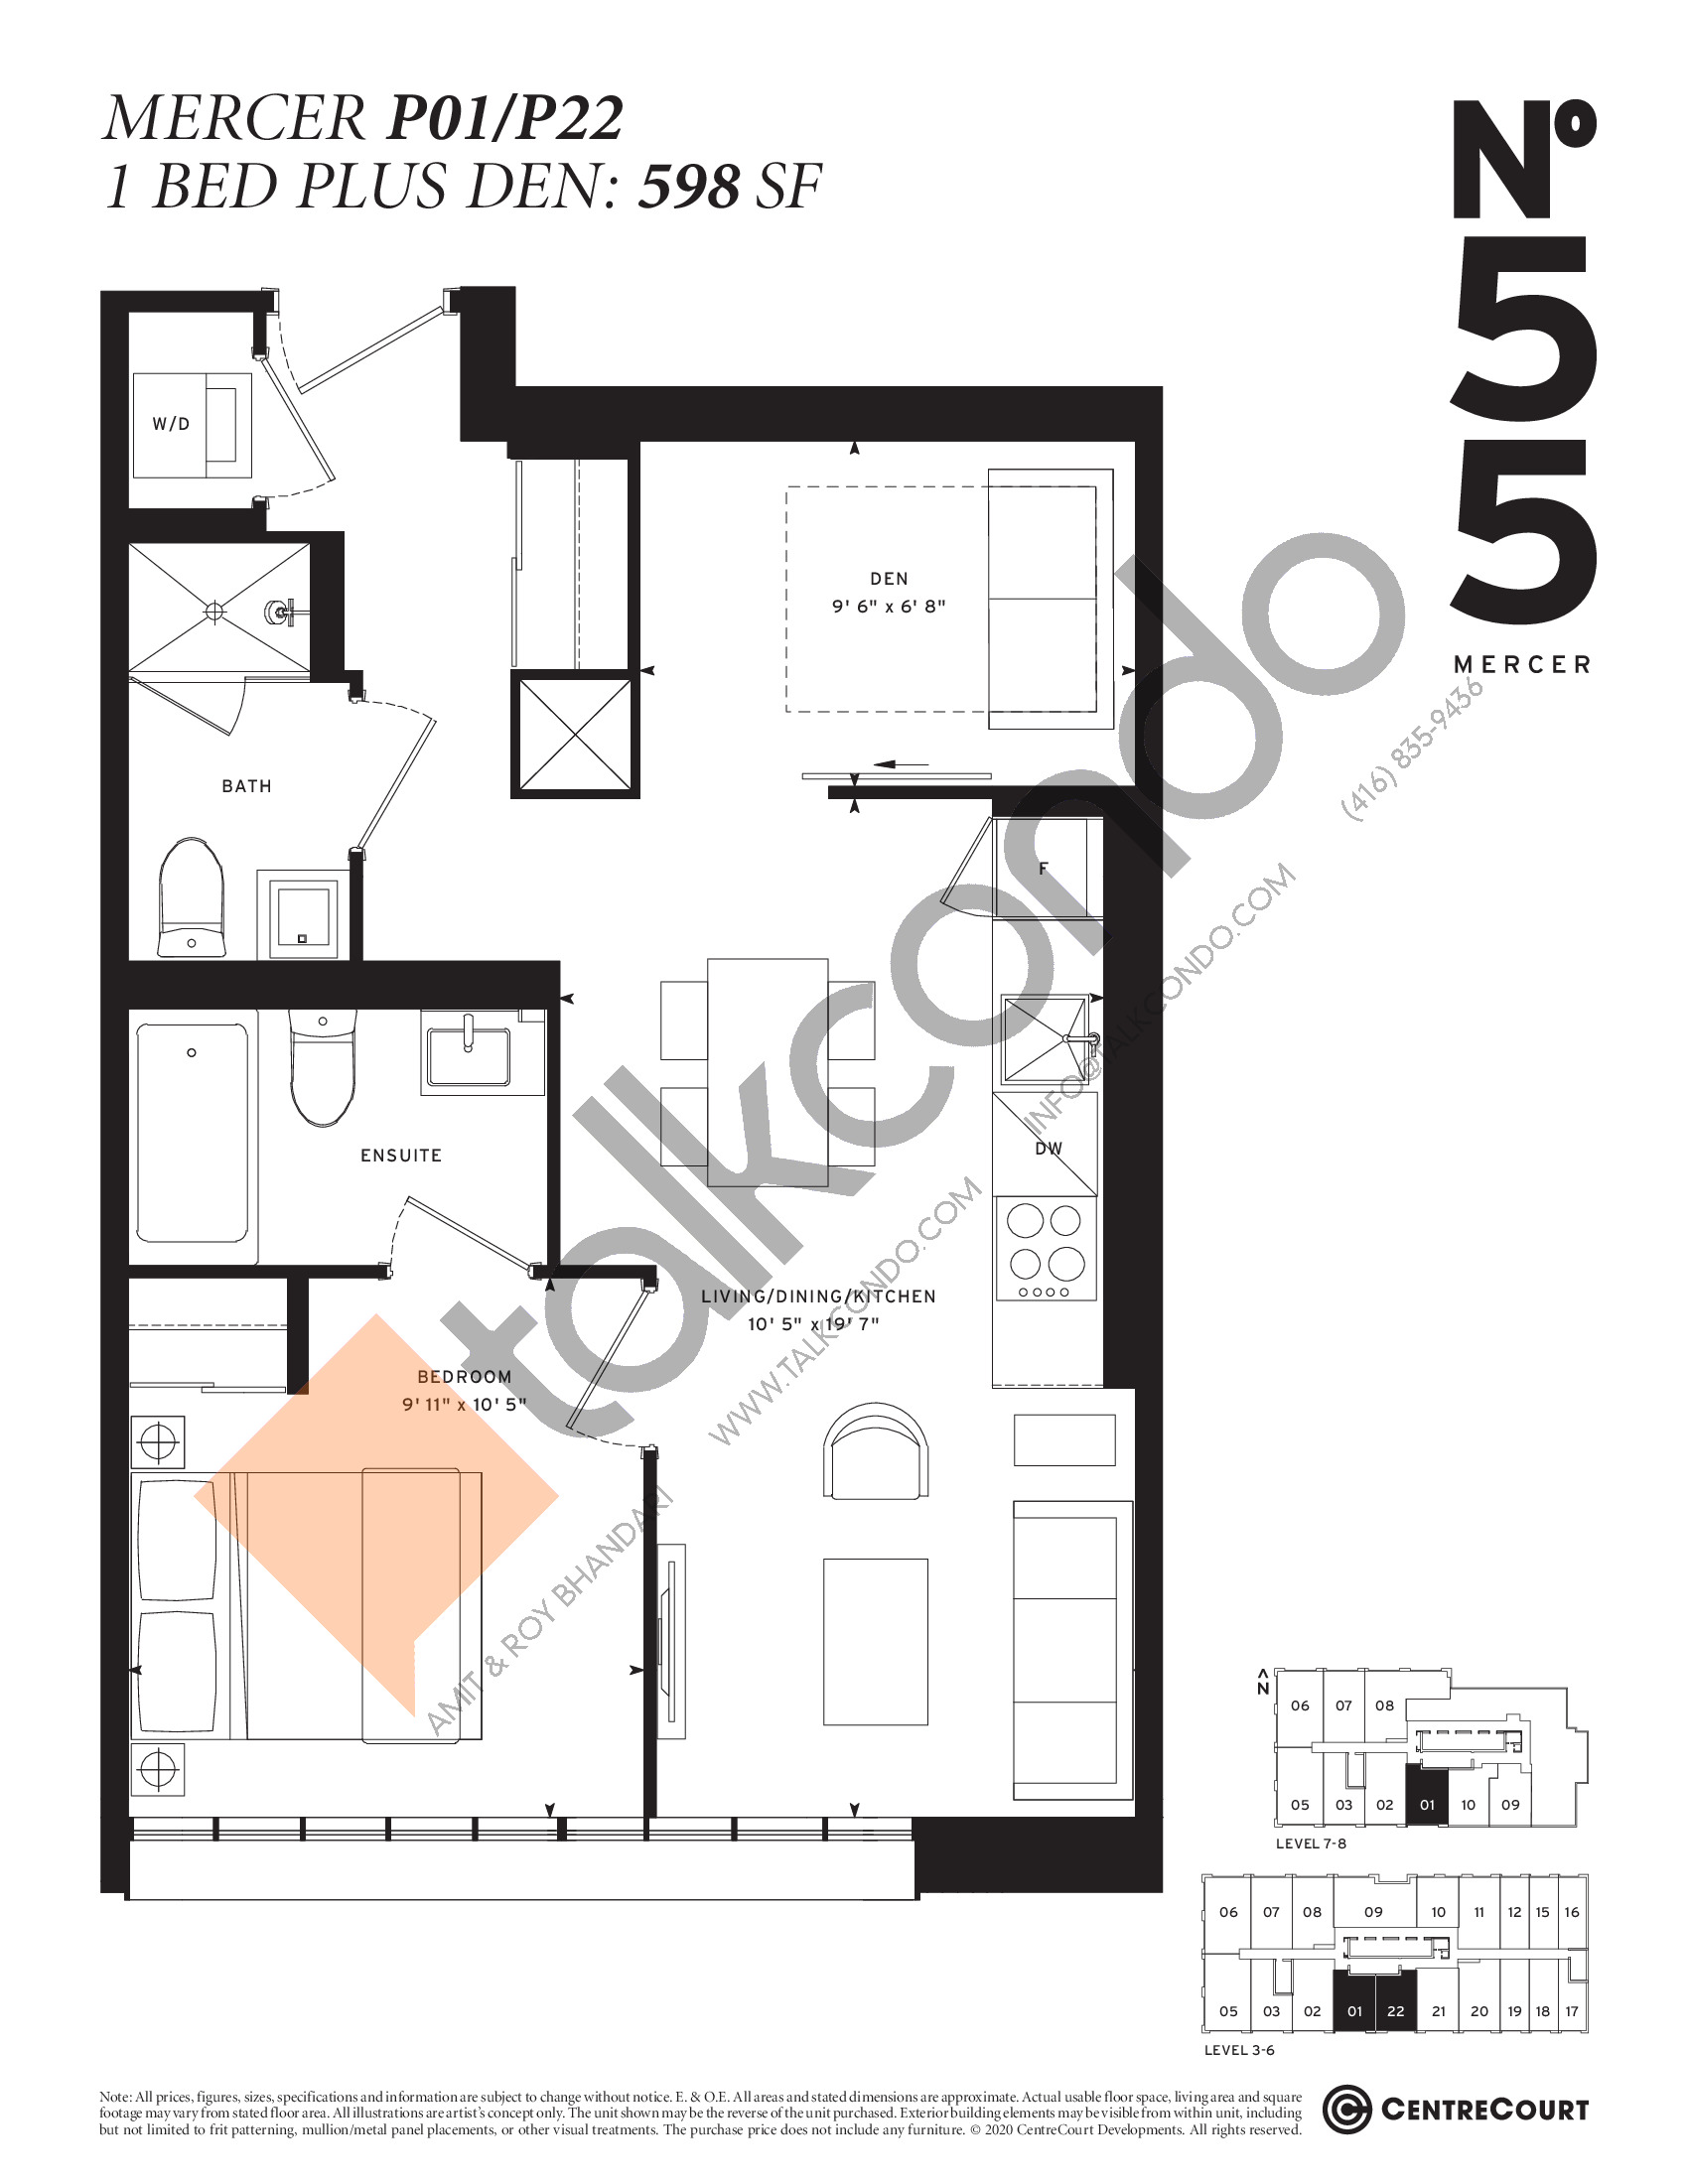 Mercer P01/P22 Floor Plan at No. 55 Mercer Condos - 598 sq.ft